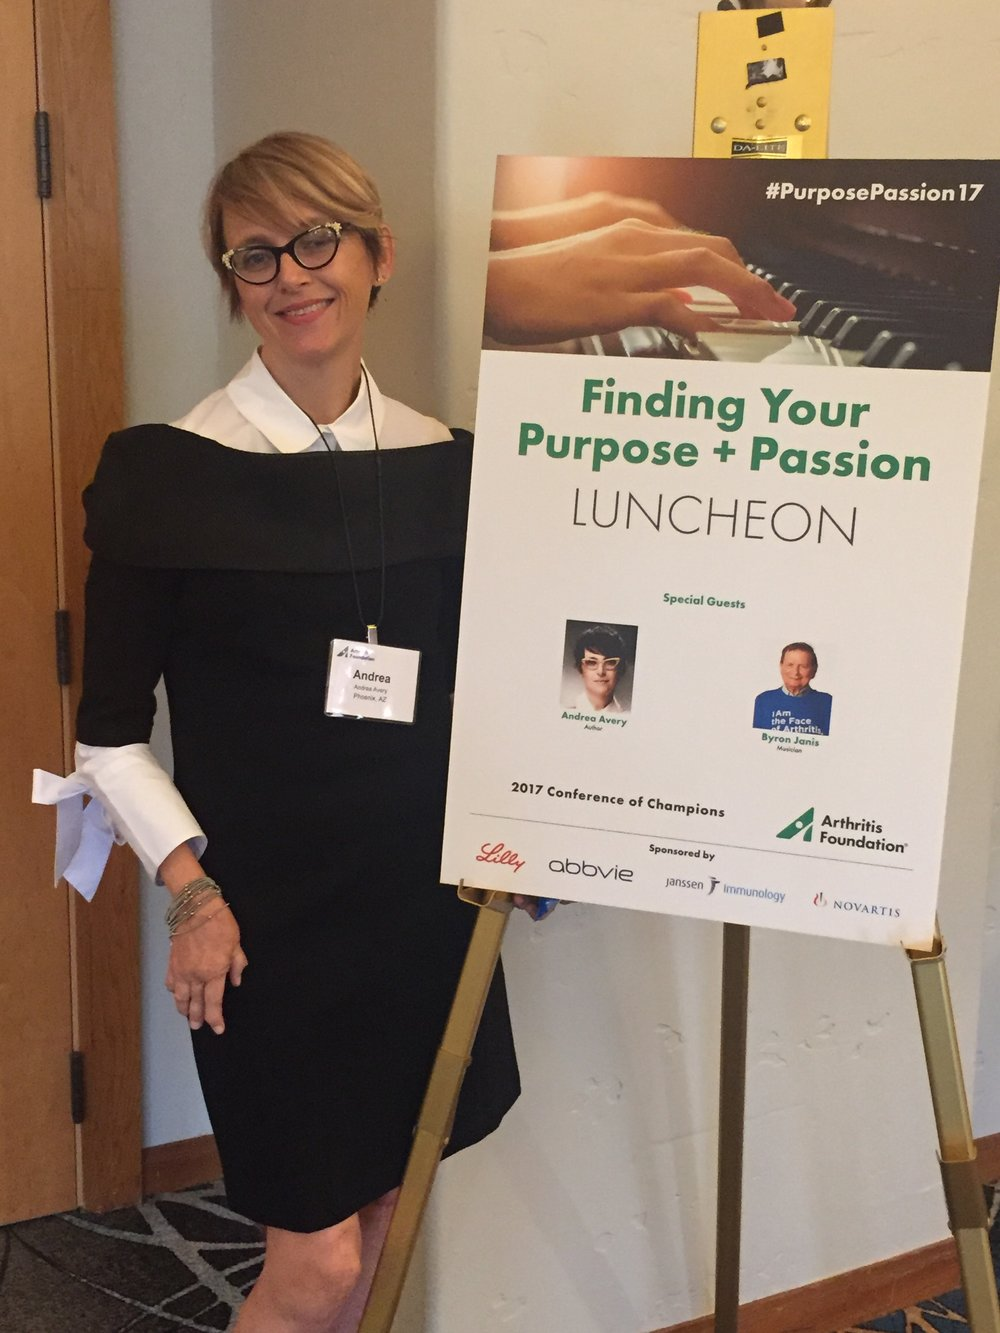 Arthritis Foundation Conference of Champions Luncheon